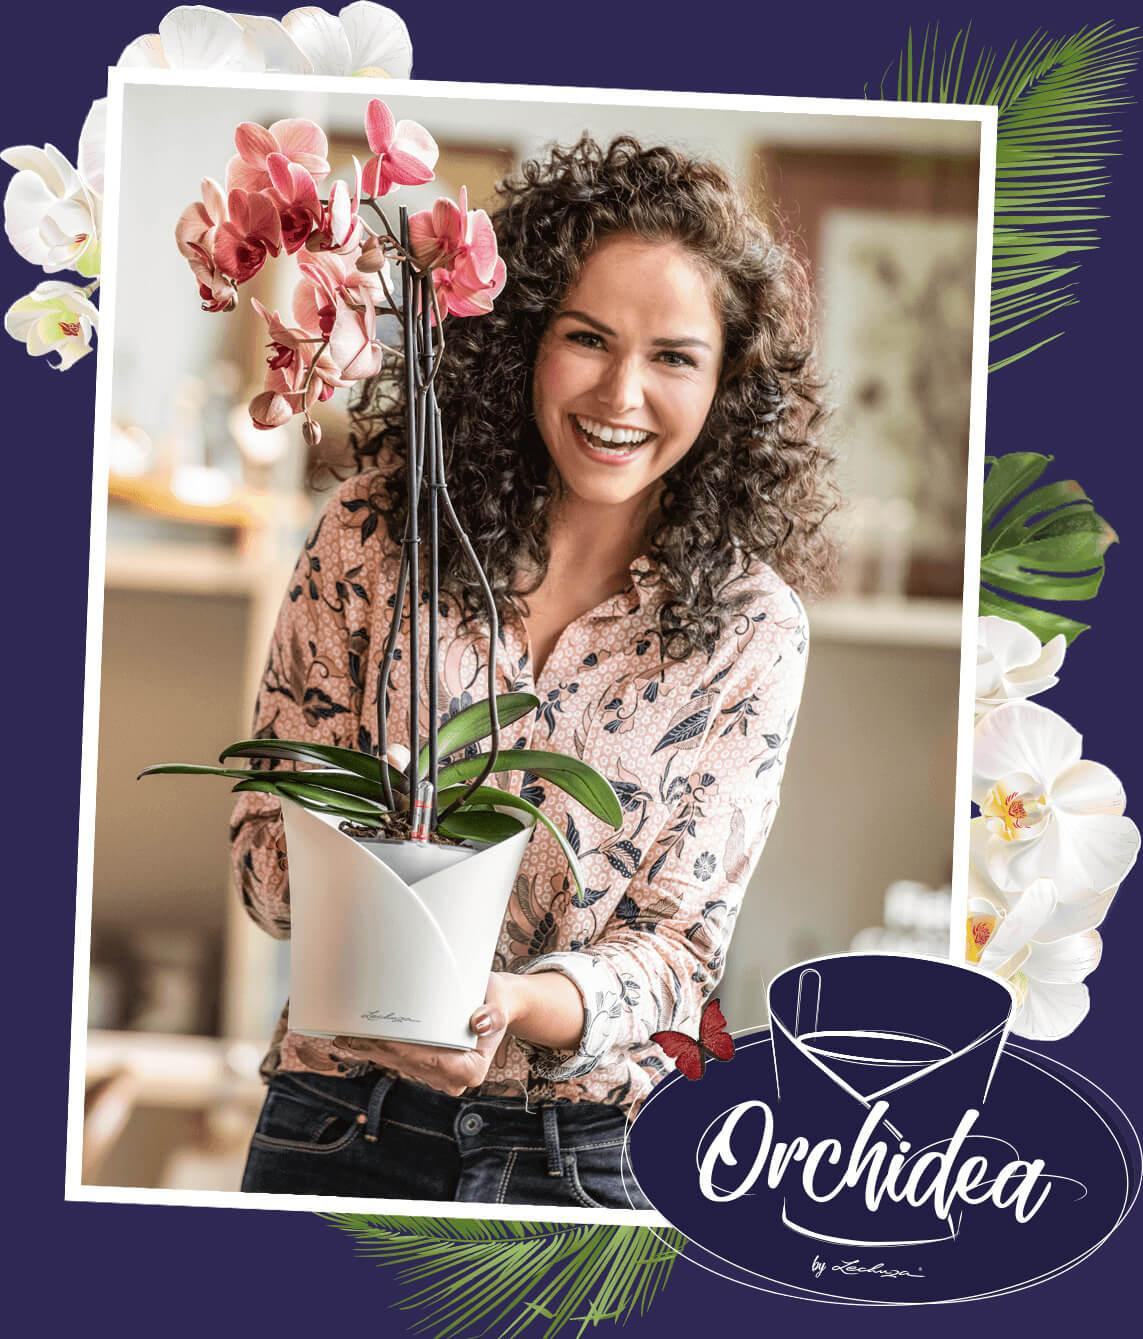 ORCHIDEA Der All-in-one Orchideentopf